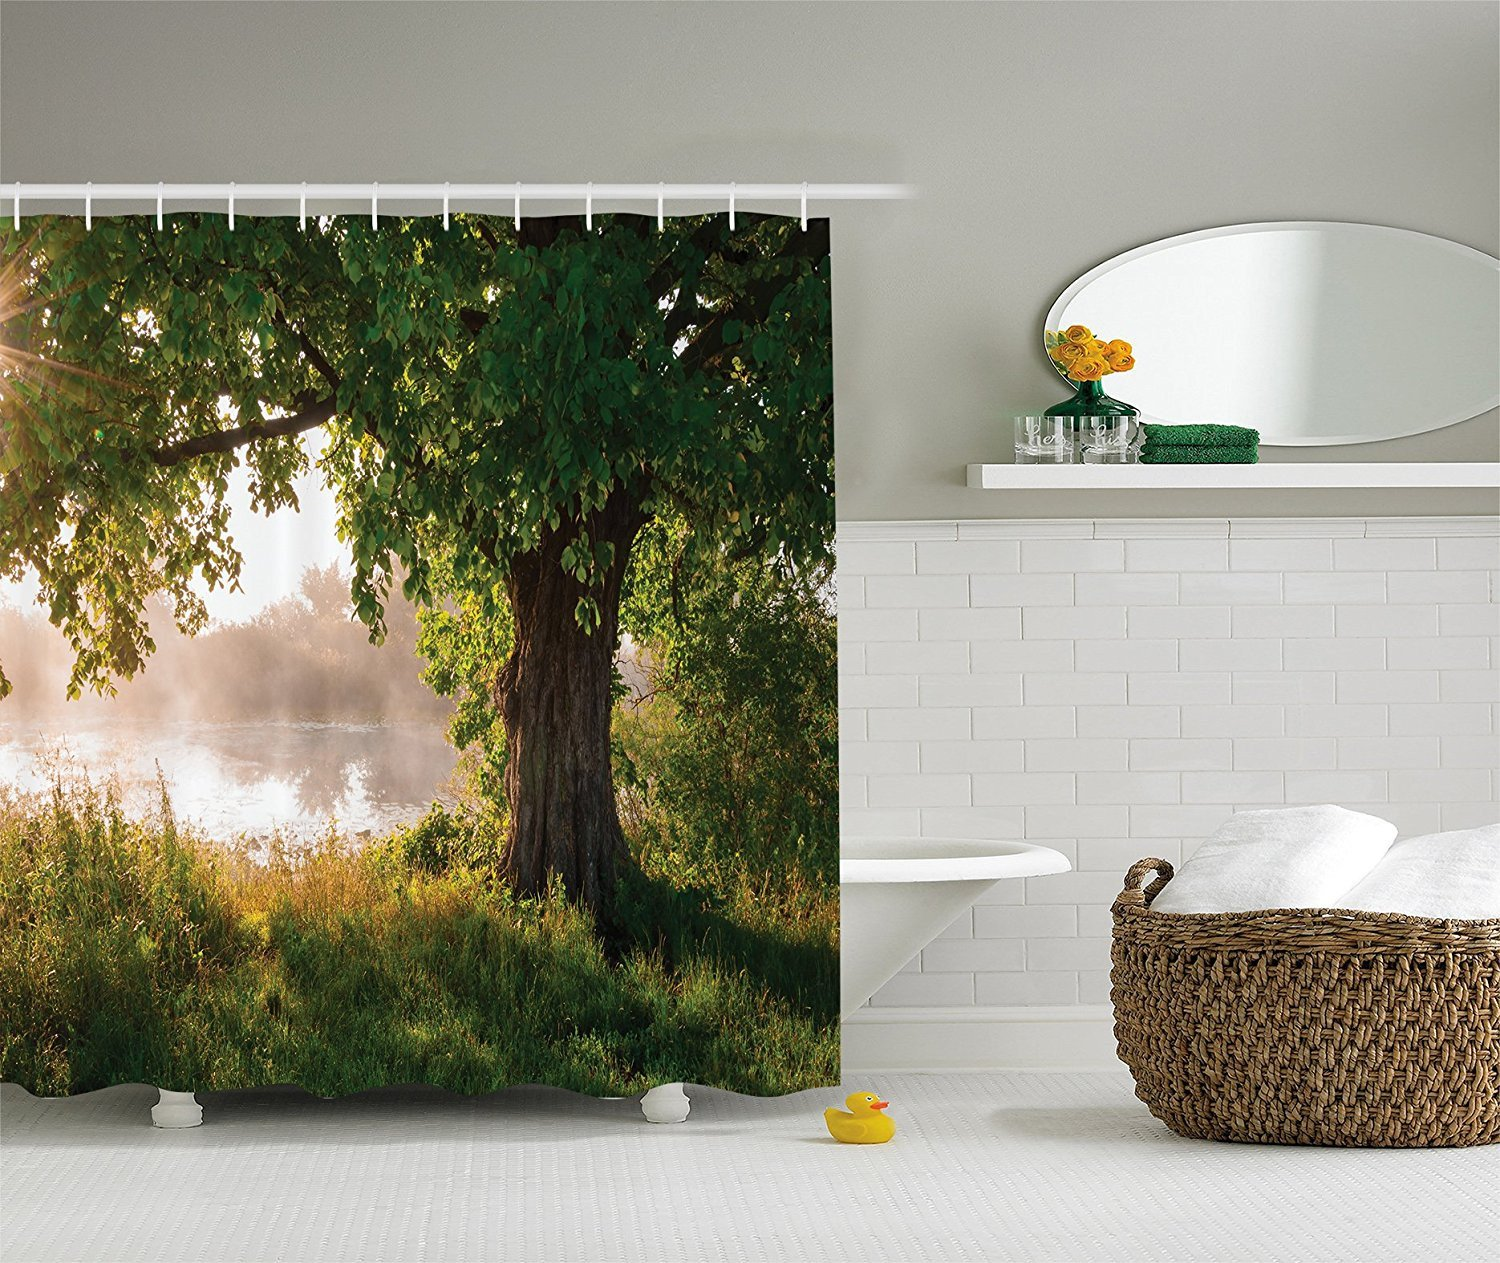 Green and Brown Bathroom Decor Luxury Green and Brown Shower Curtain Oak Tree Decor by Mystic Landscape Foggy Scene and Stream View